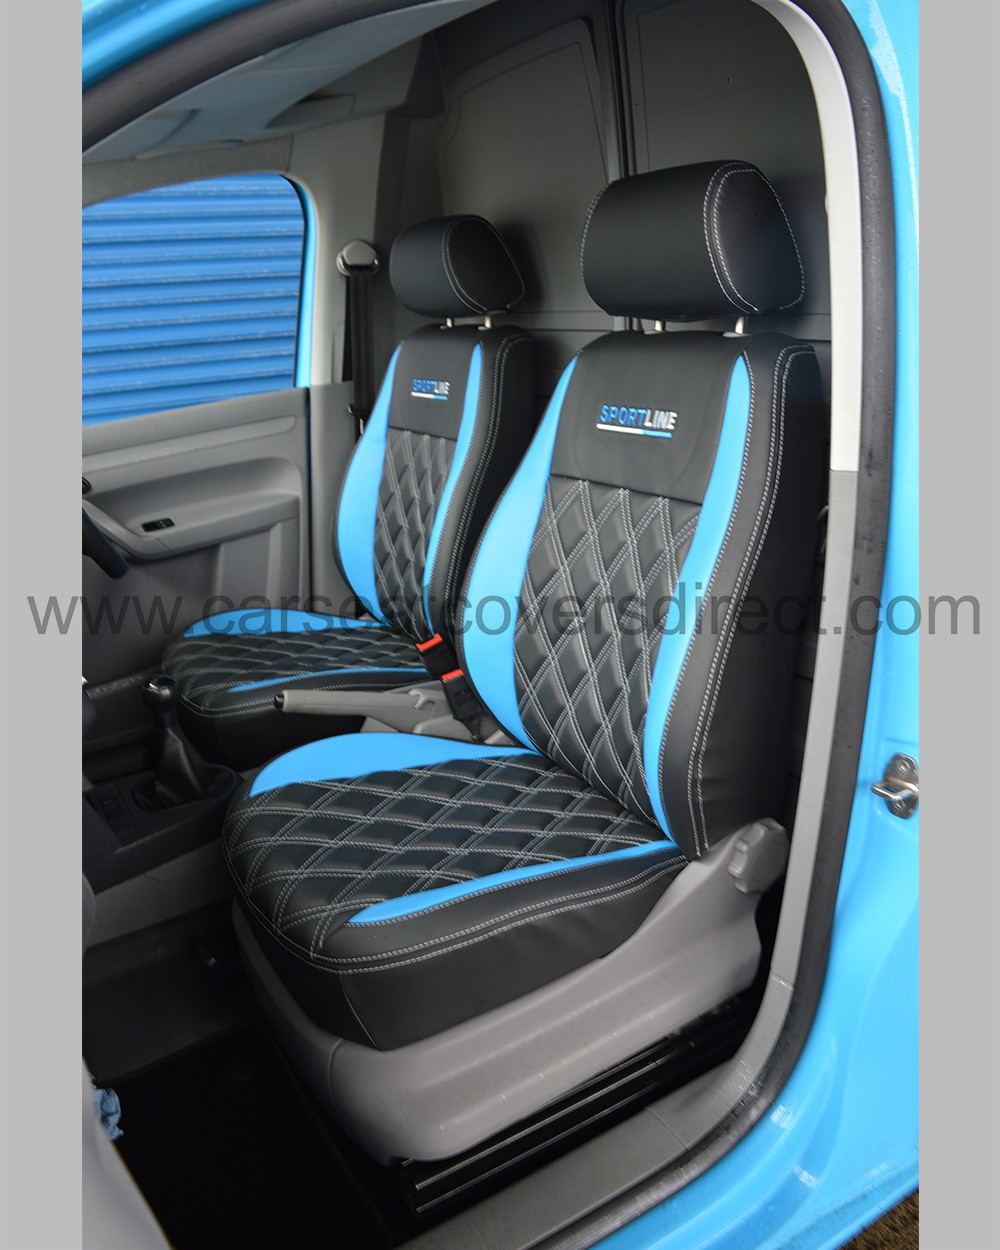 Vw Beetle Car Seat Covers